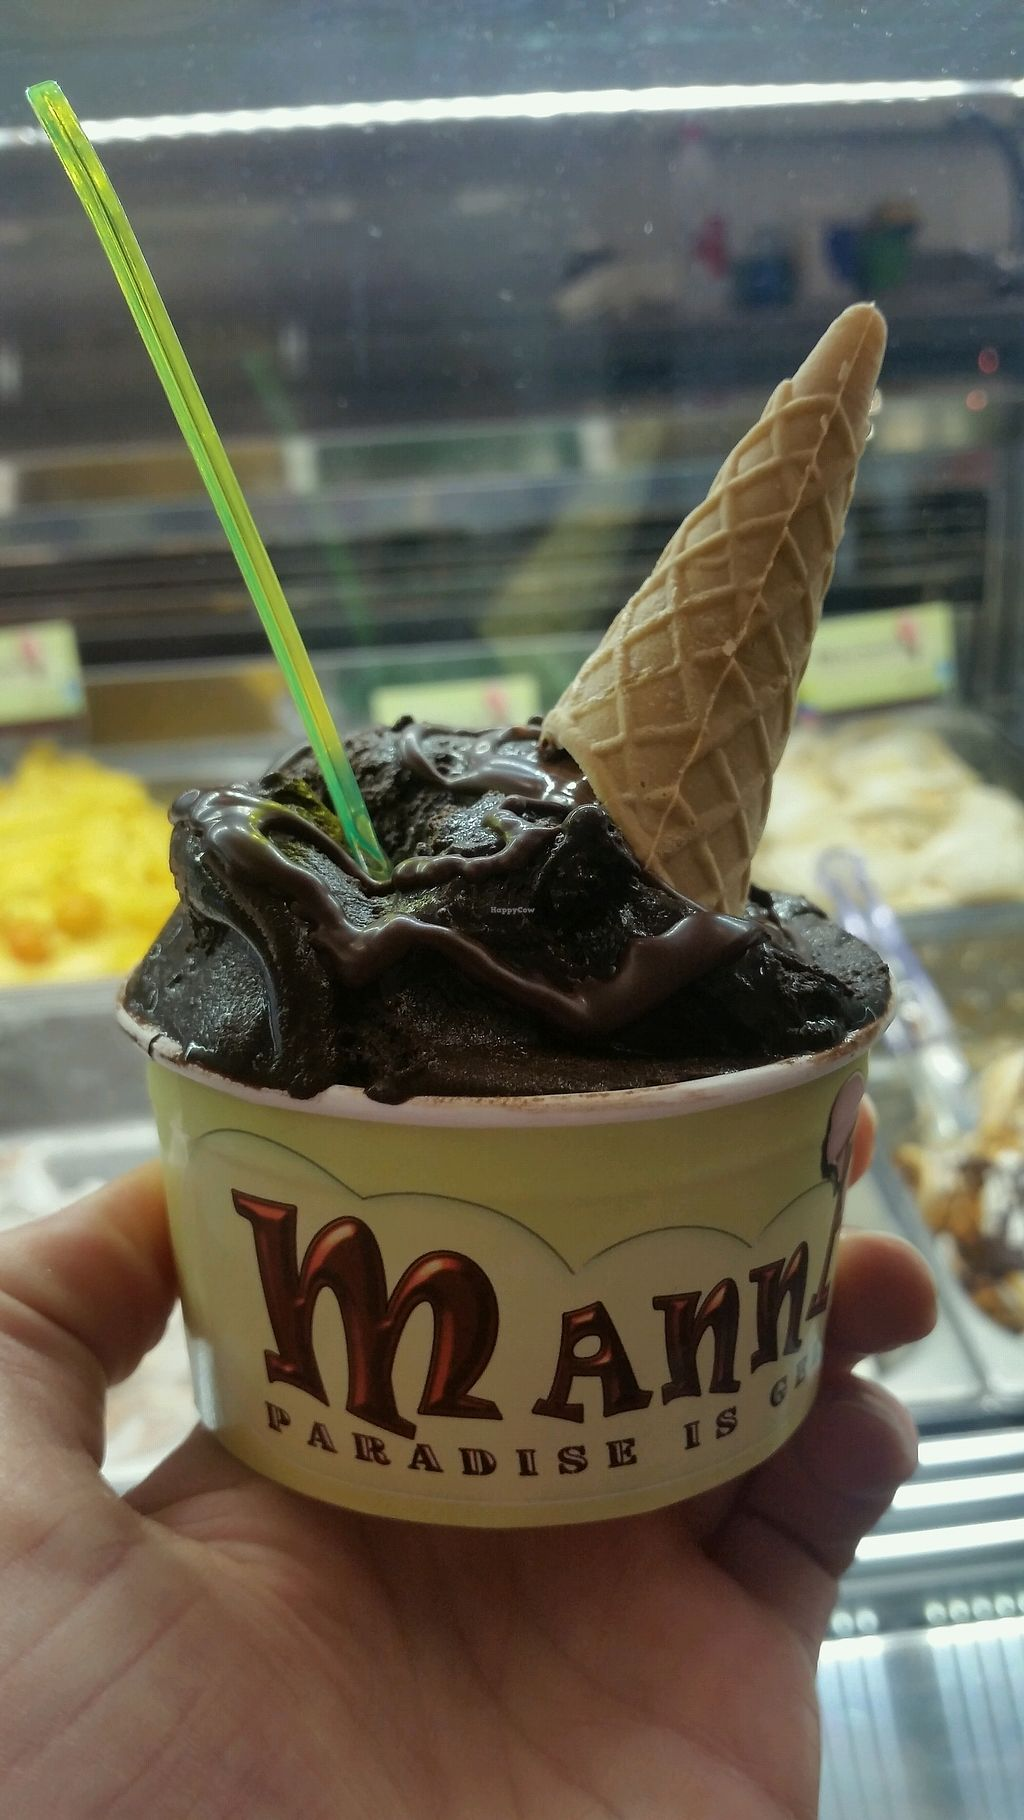 "Photo of Manna Gelats  by <a href=""/members/profile/AthenaTrombly"">AthenaTrombly</a> <br/>Chocolate gelato  <br/> March 17, 2018  - <a href='/contact/abuse/image/80072/371859'>Report</a>"